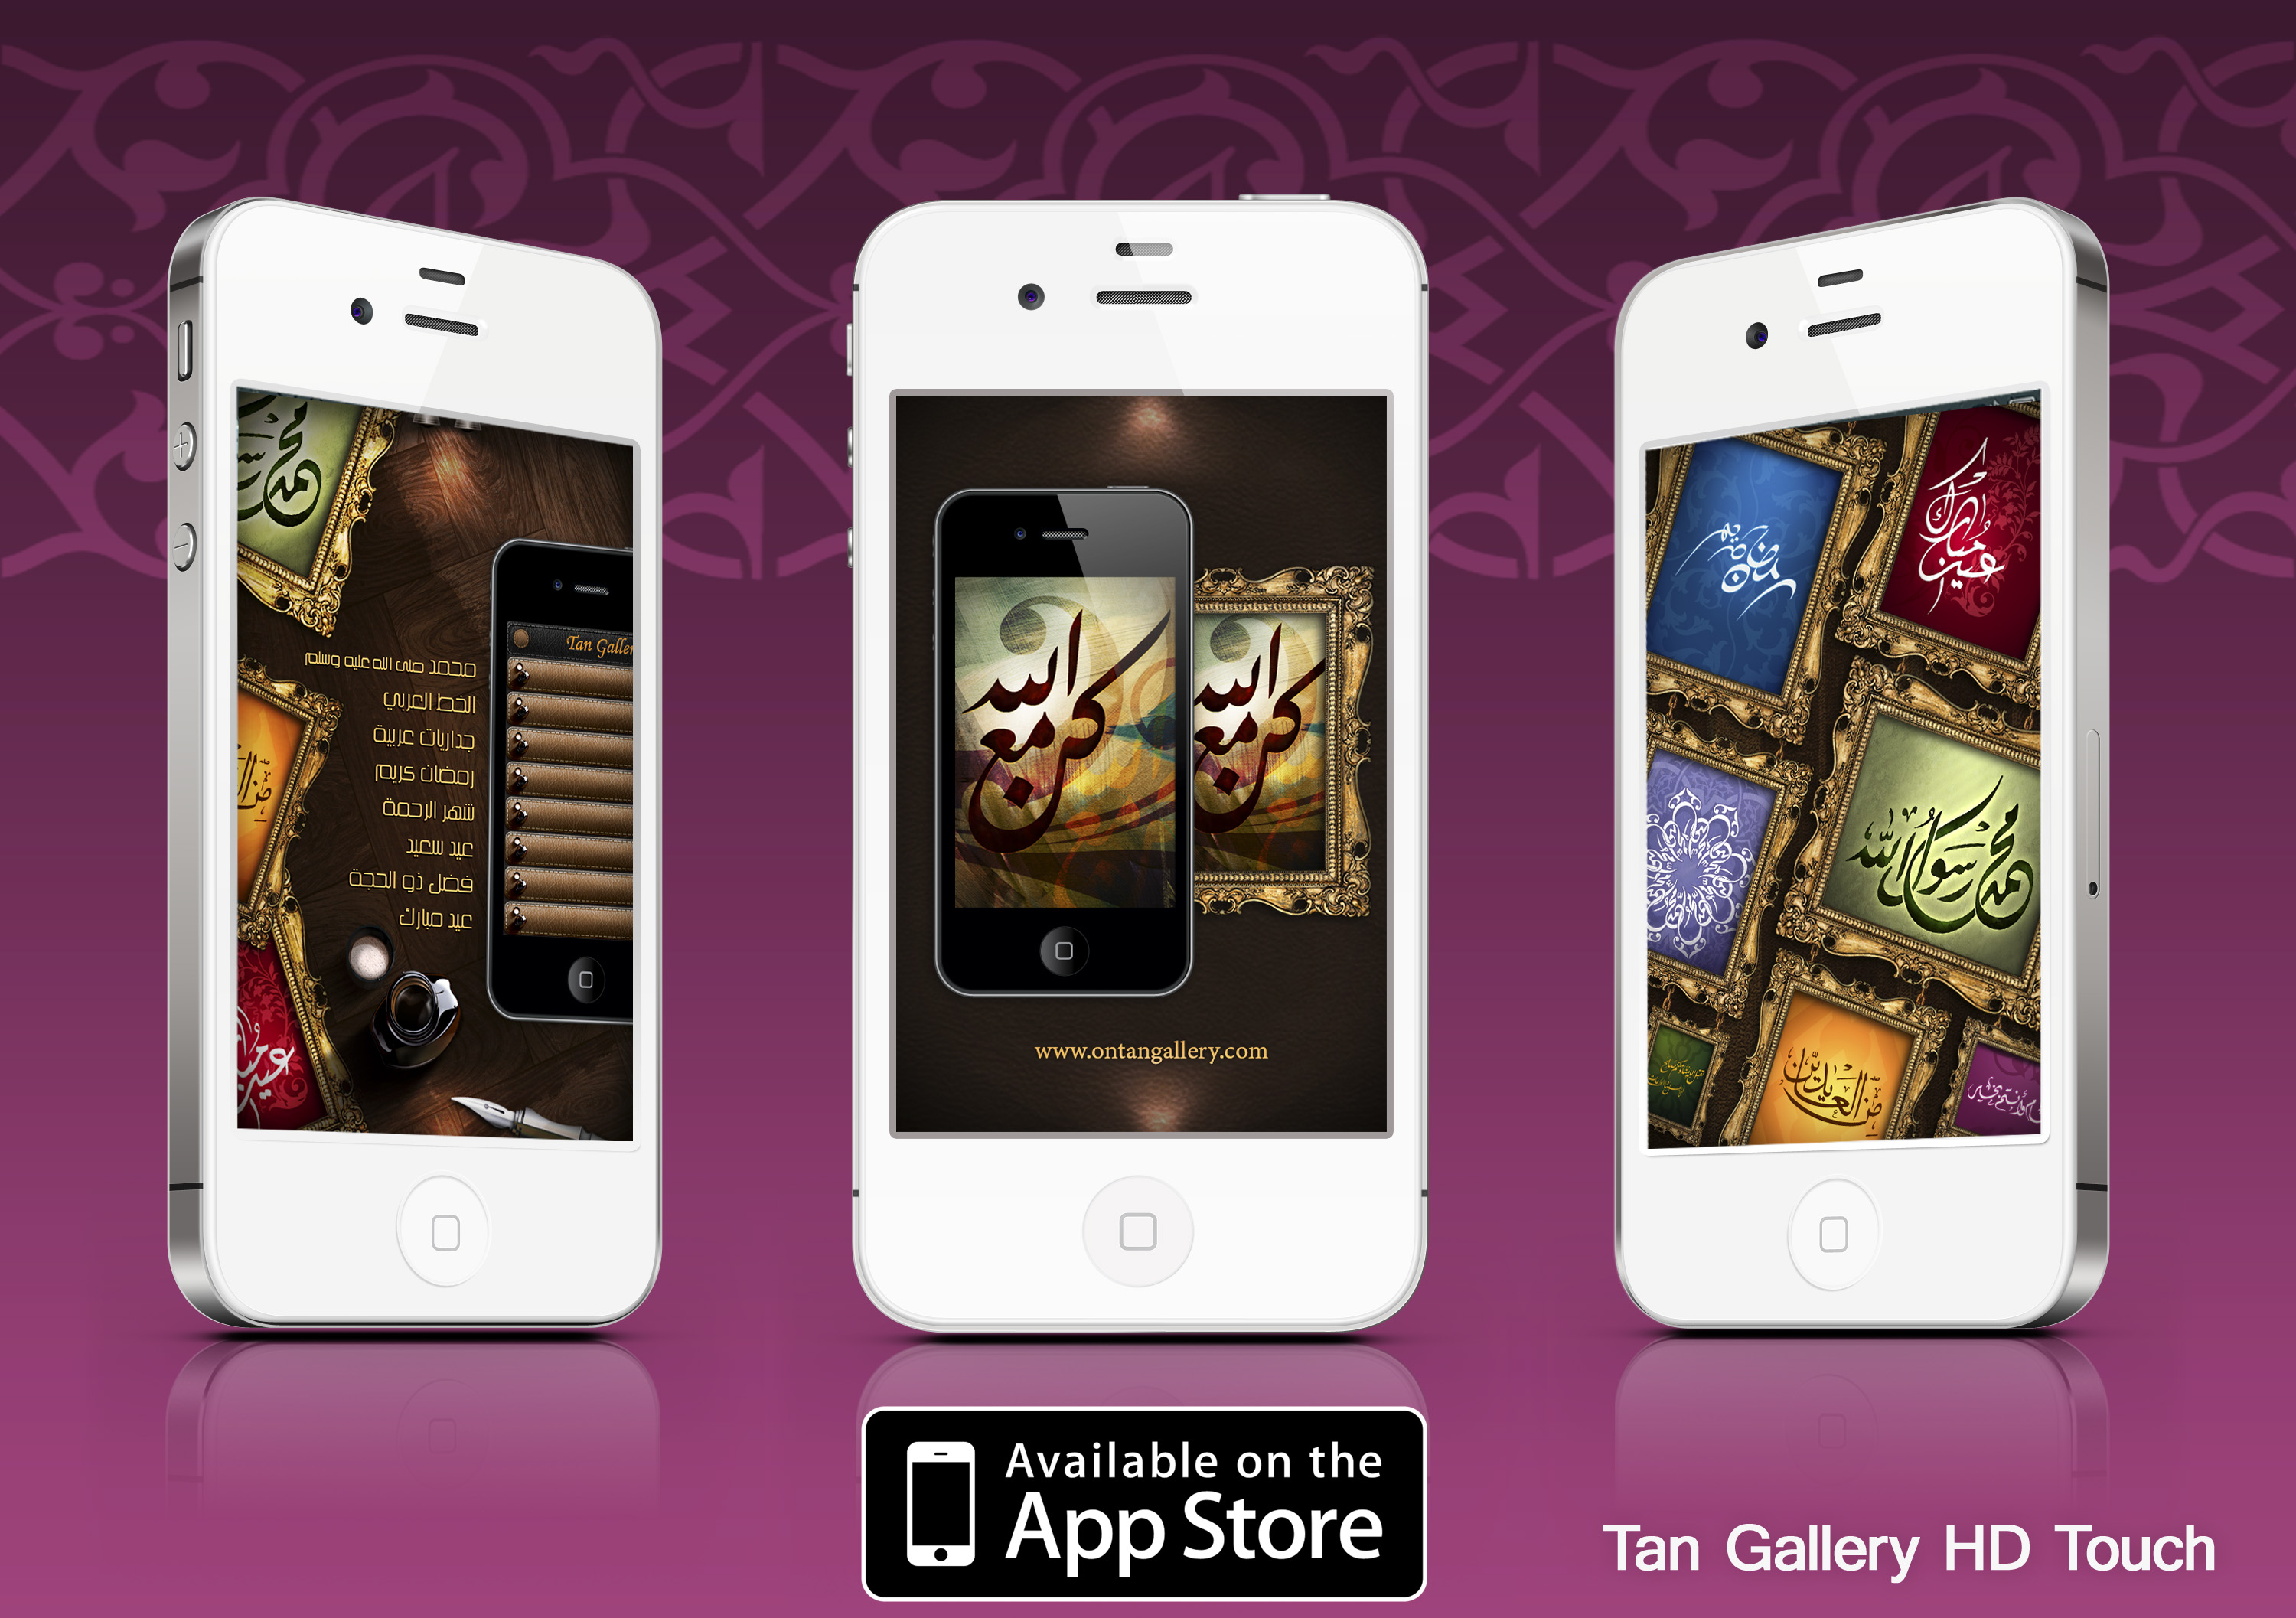 Tan Gallery HD Touch available on the app store by marh333